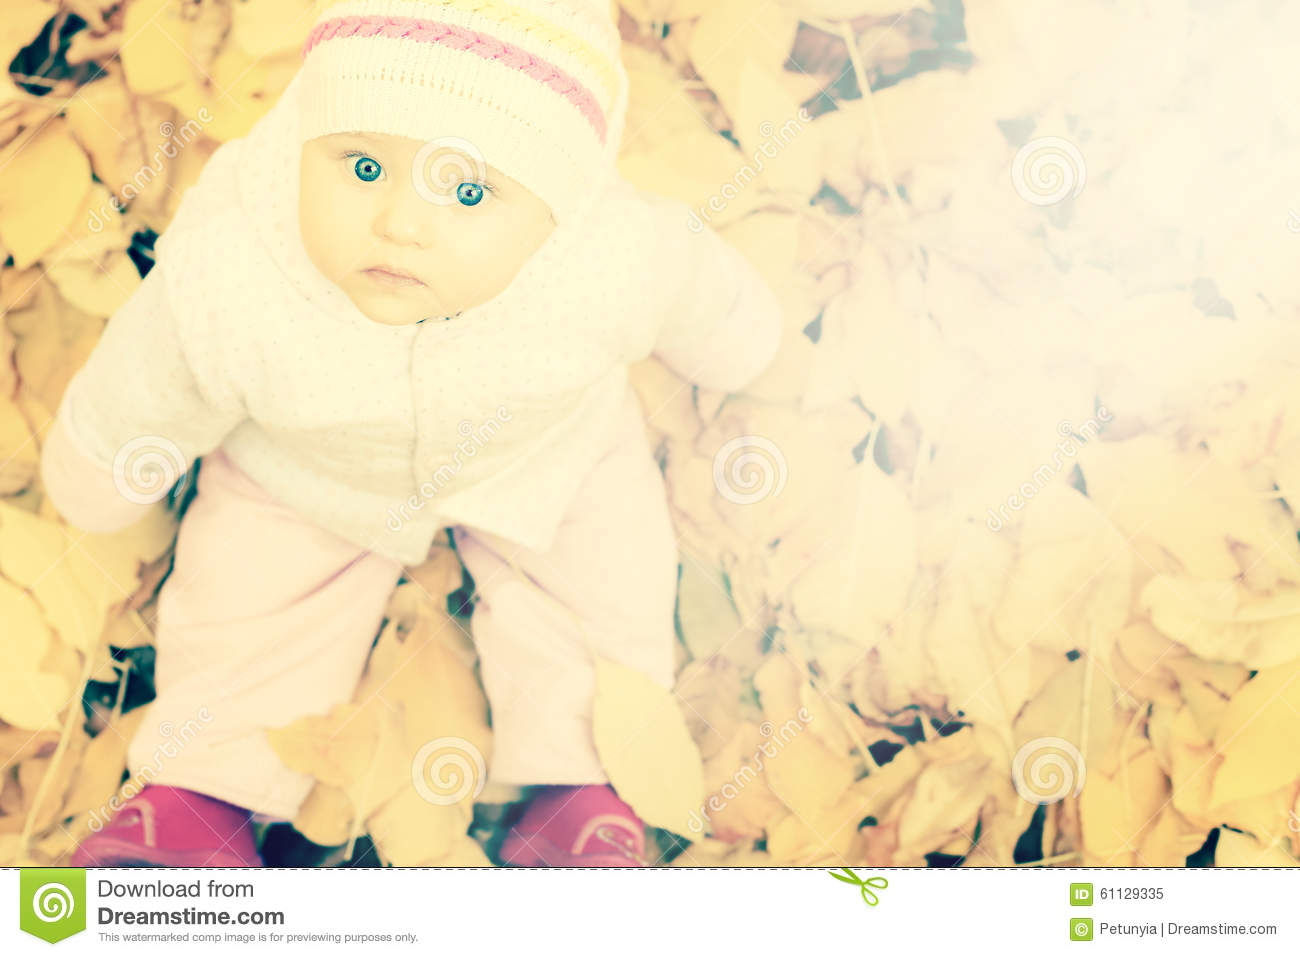 Portrait of baby at autumn park with yellow leaves background